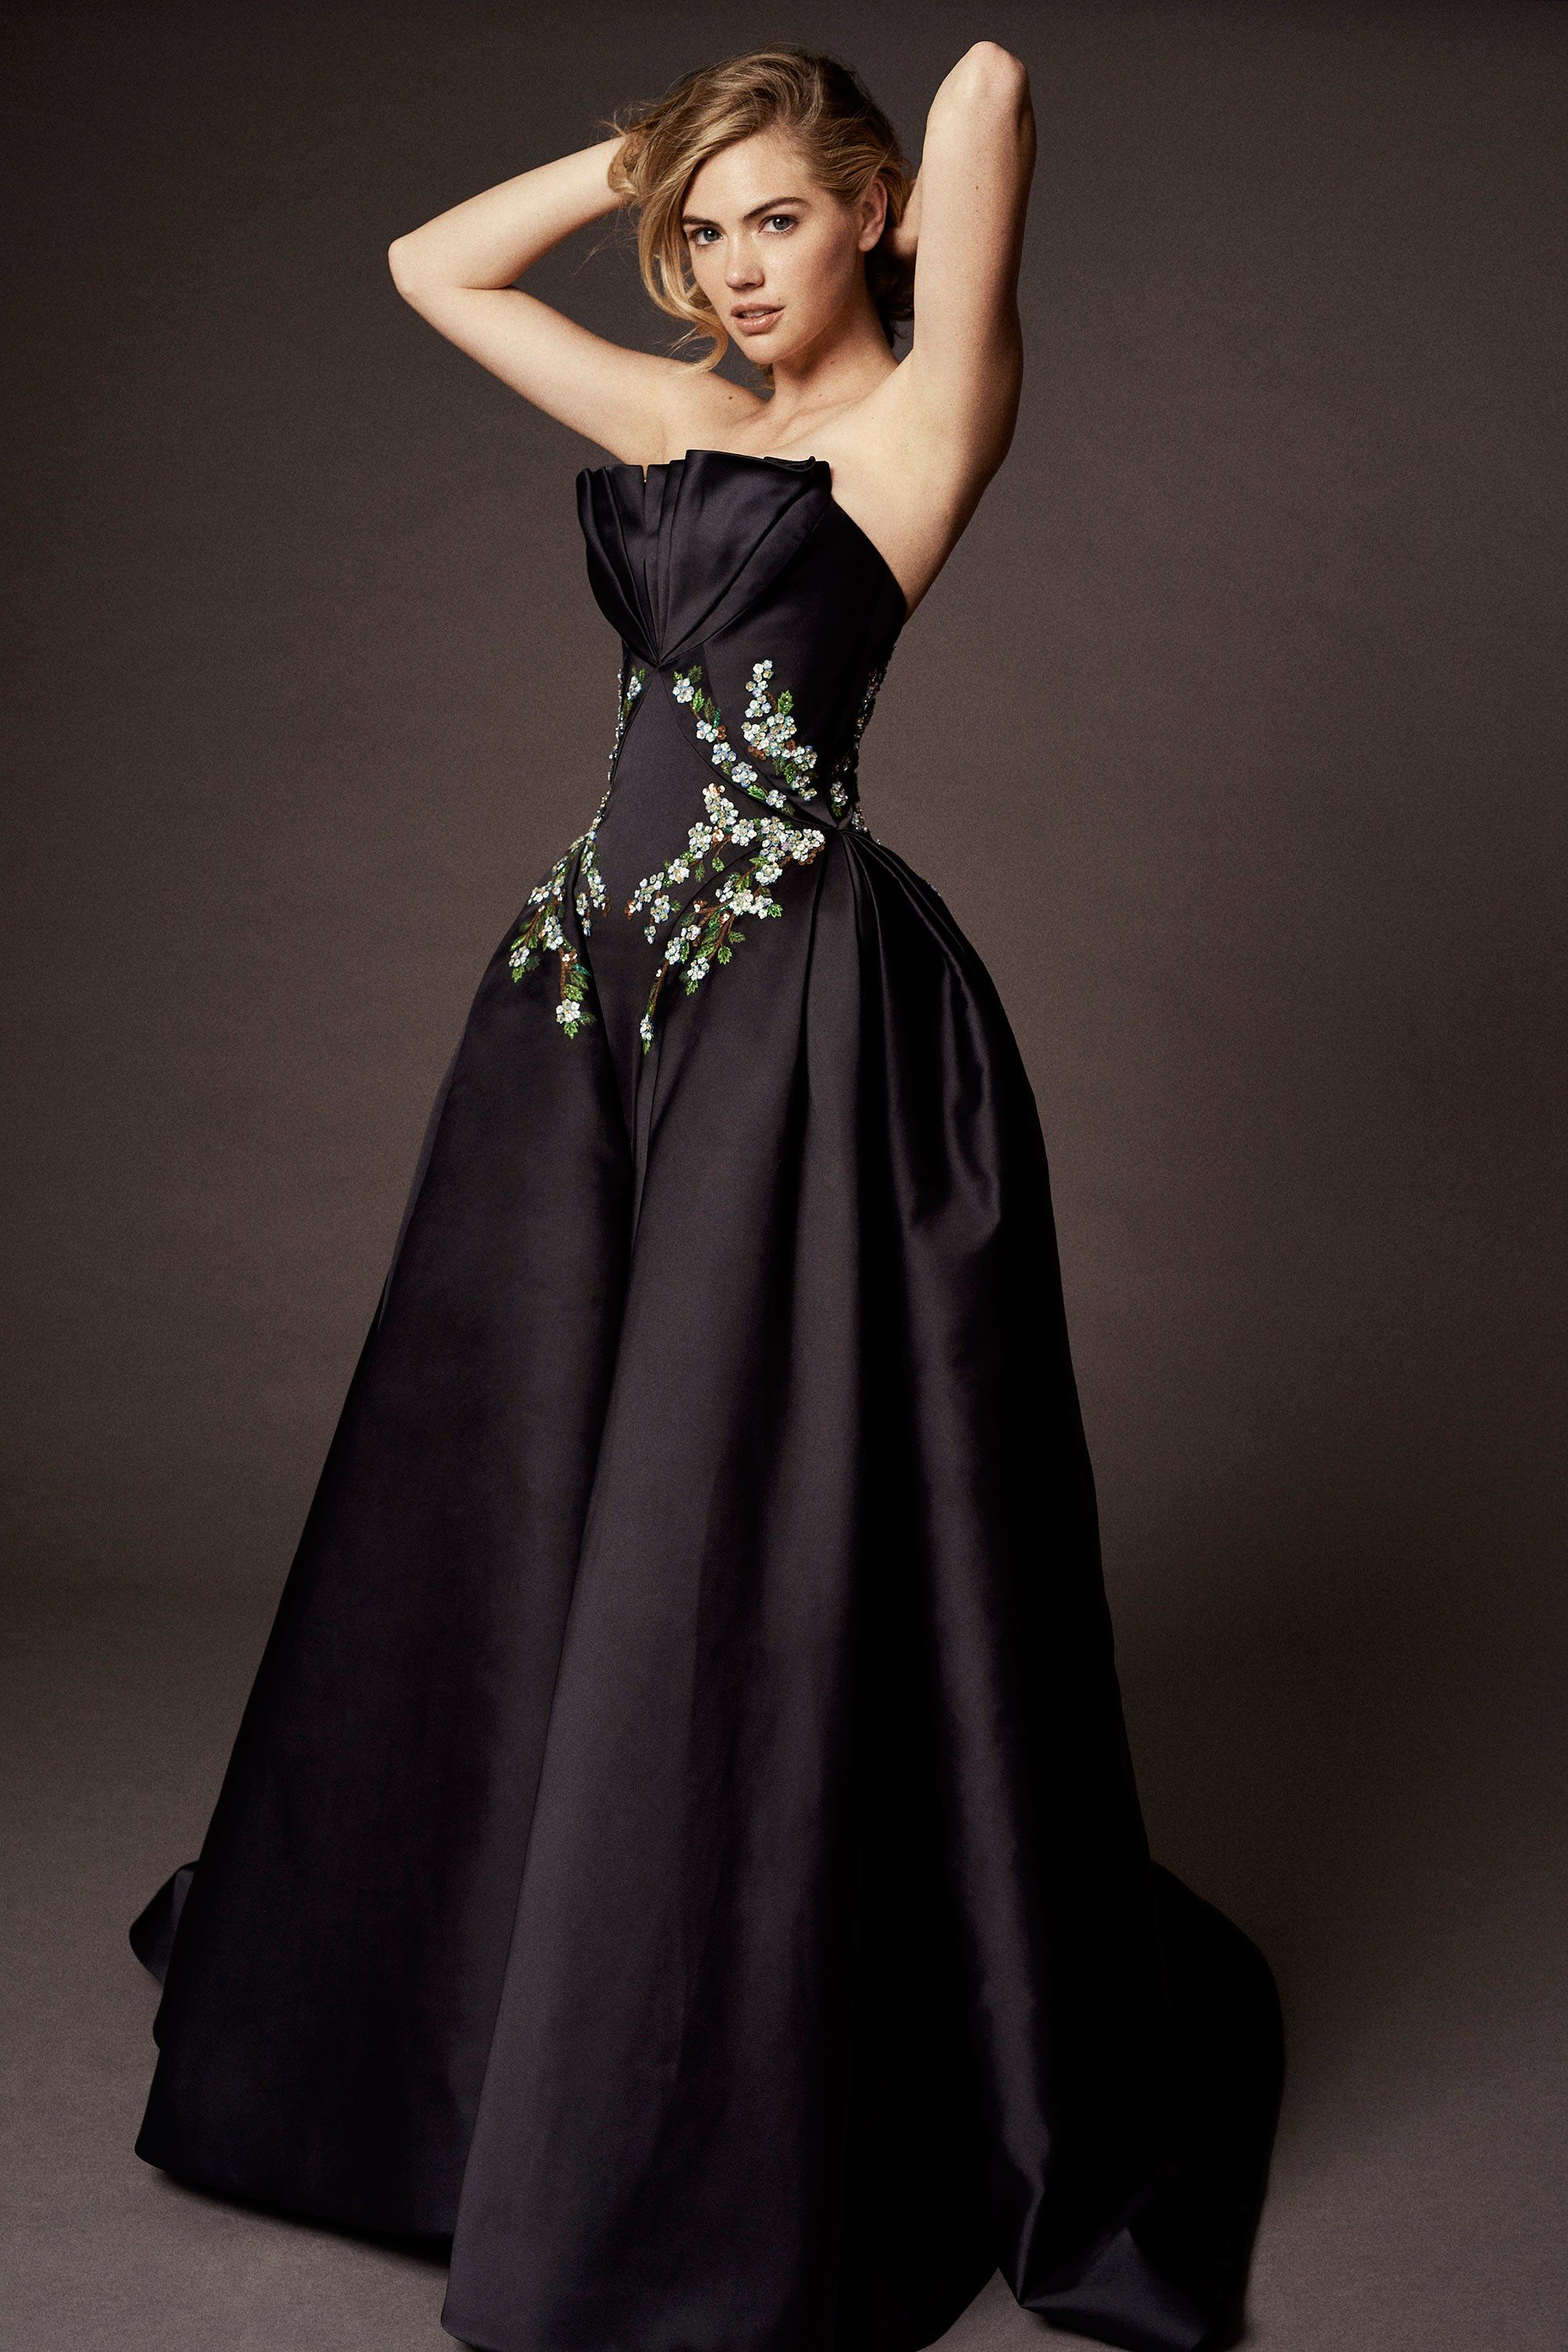 Pin by Zac Posen on Abendkleider  Ball gowns, Fashion, Dress up